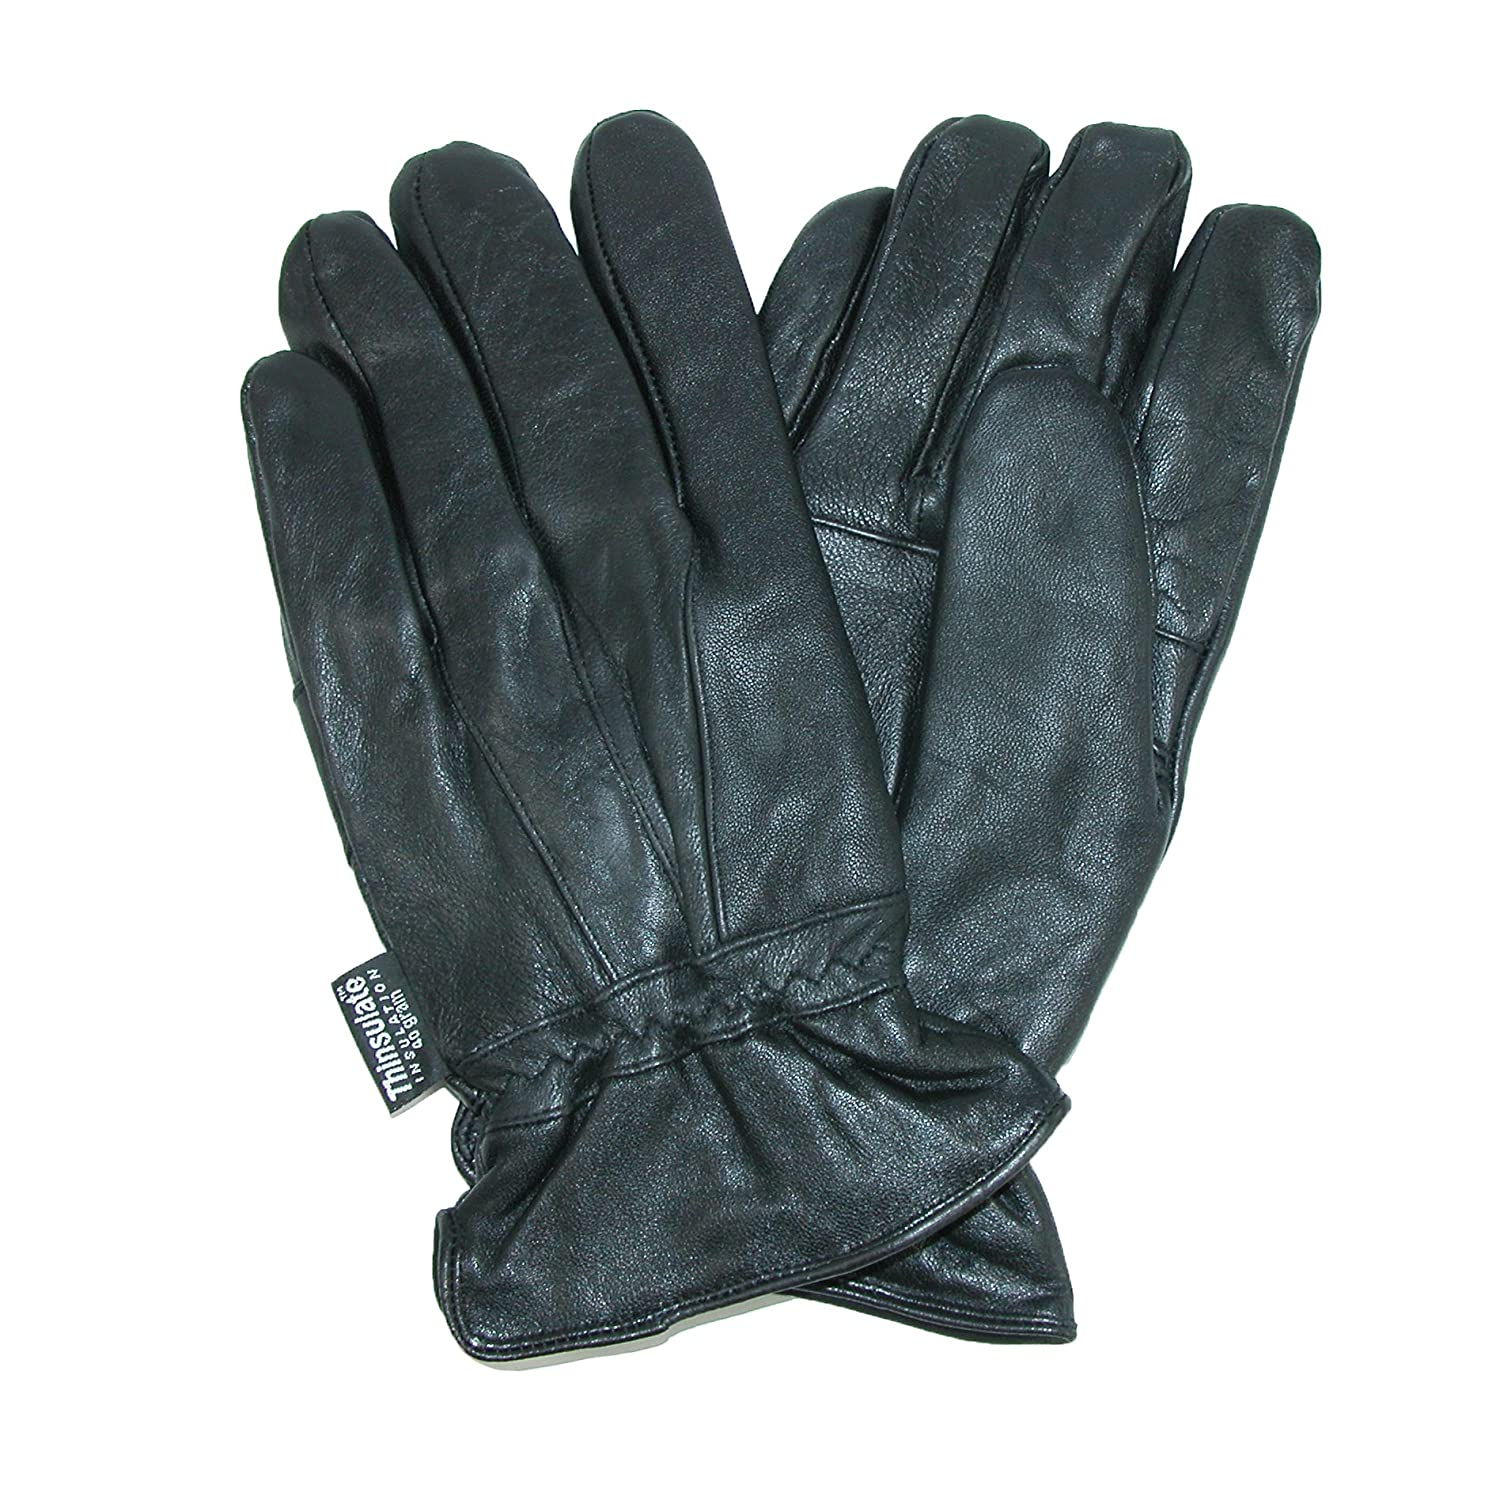 Driving gloves winter - Dorfman Pacific Mens Leather Thinsulate Lined Water Repellent Winter Gloves Small Medium At Amazon Men S Clothing Store Cold Weather Gloves